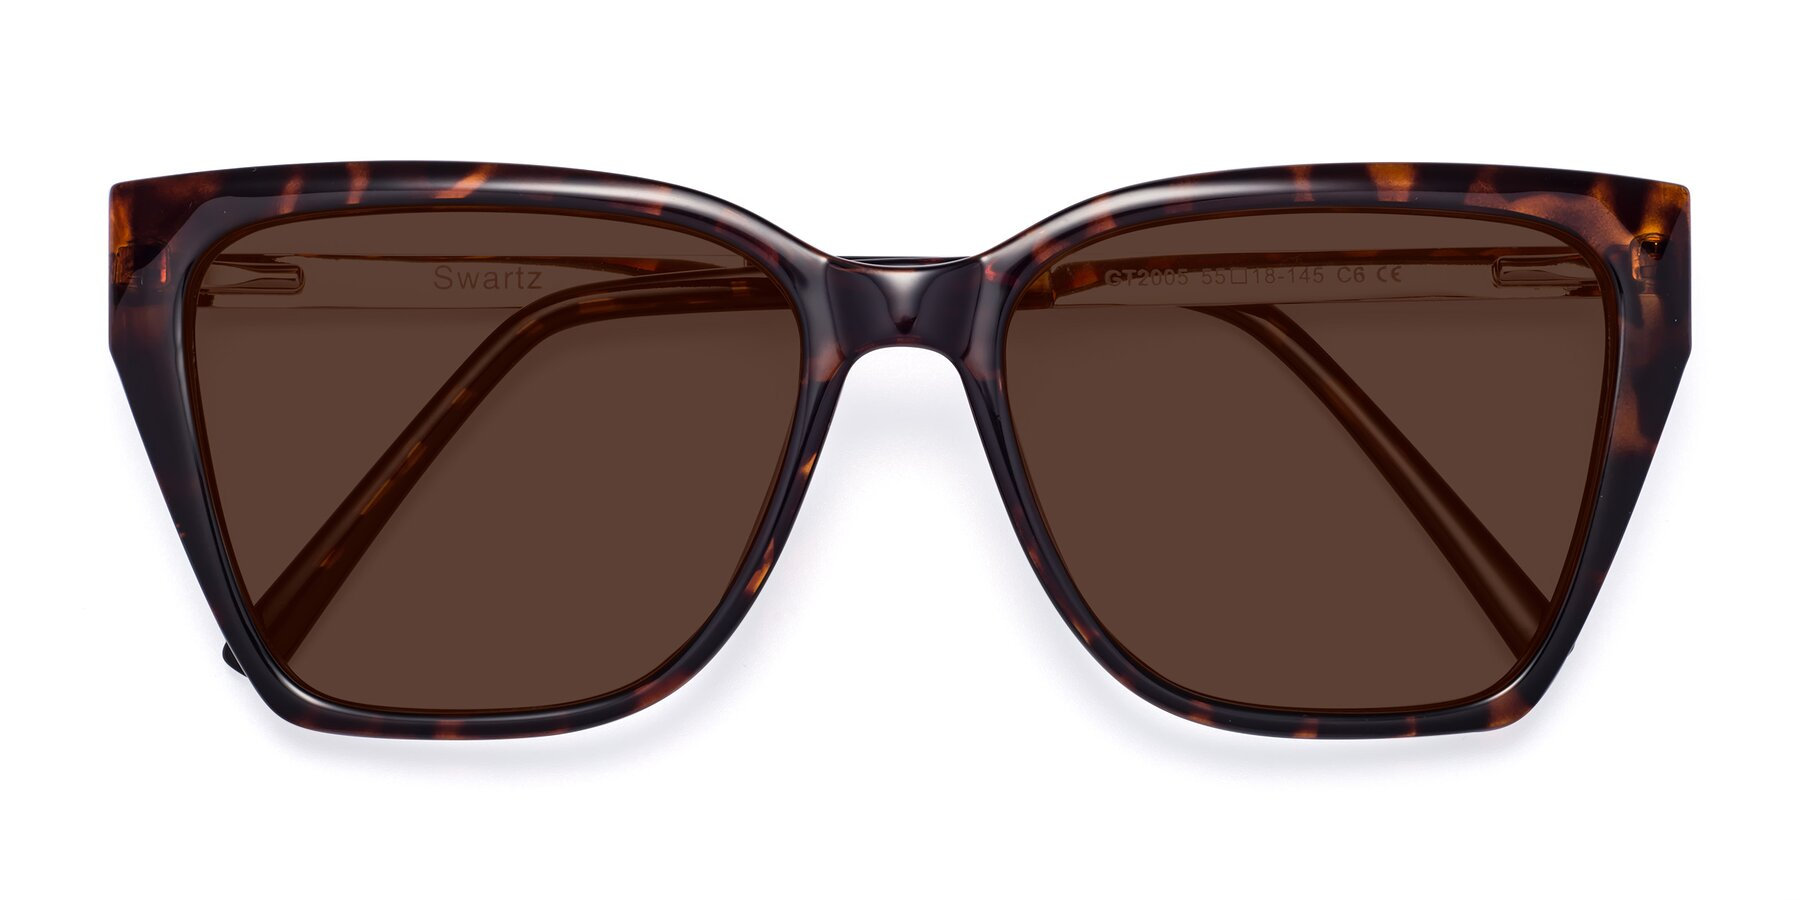 Folded Front of Swartz in Tortoise with Brown Tinted Lenses